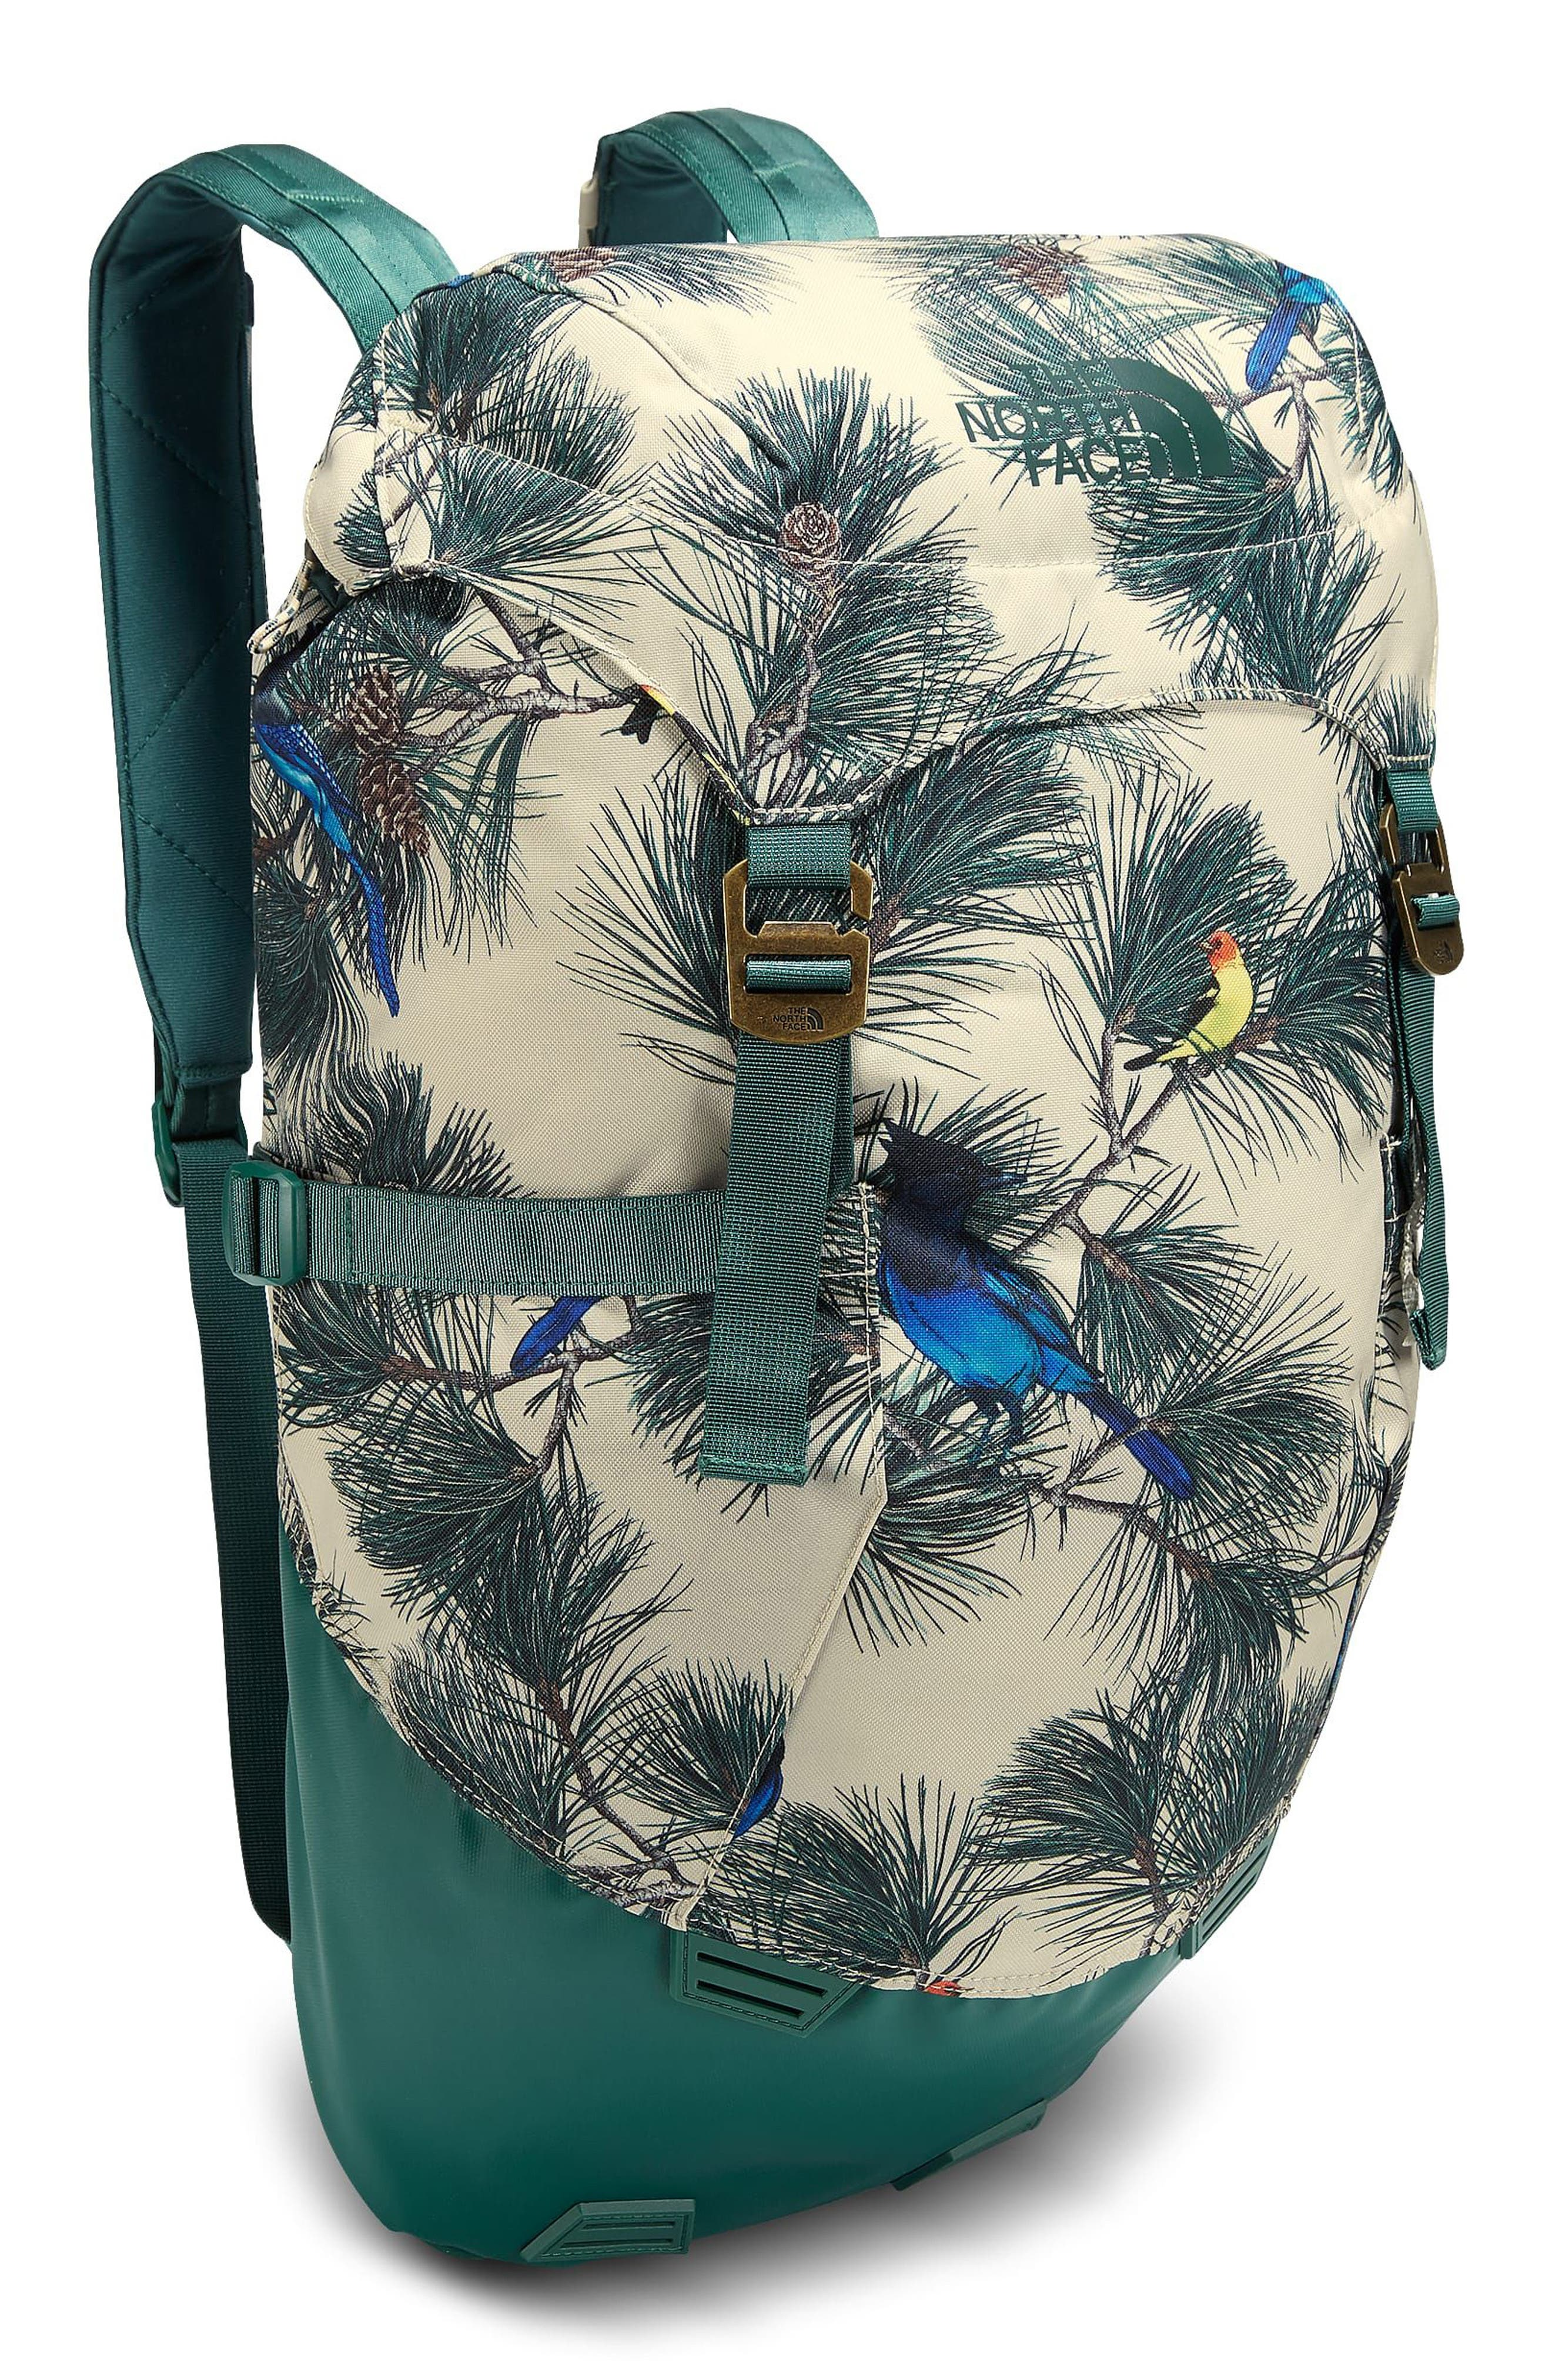 The North Face Roadtripper Backpack